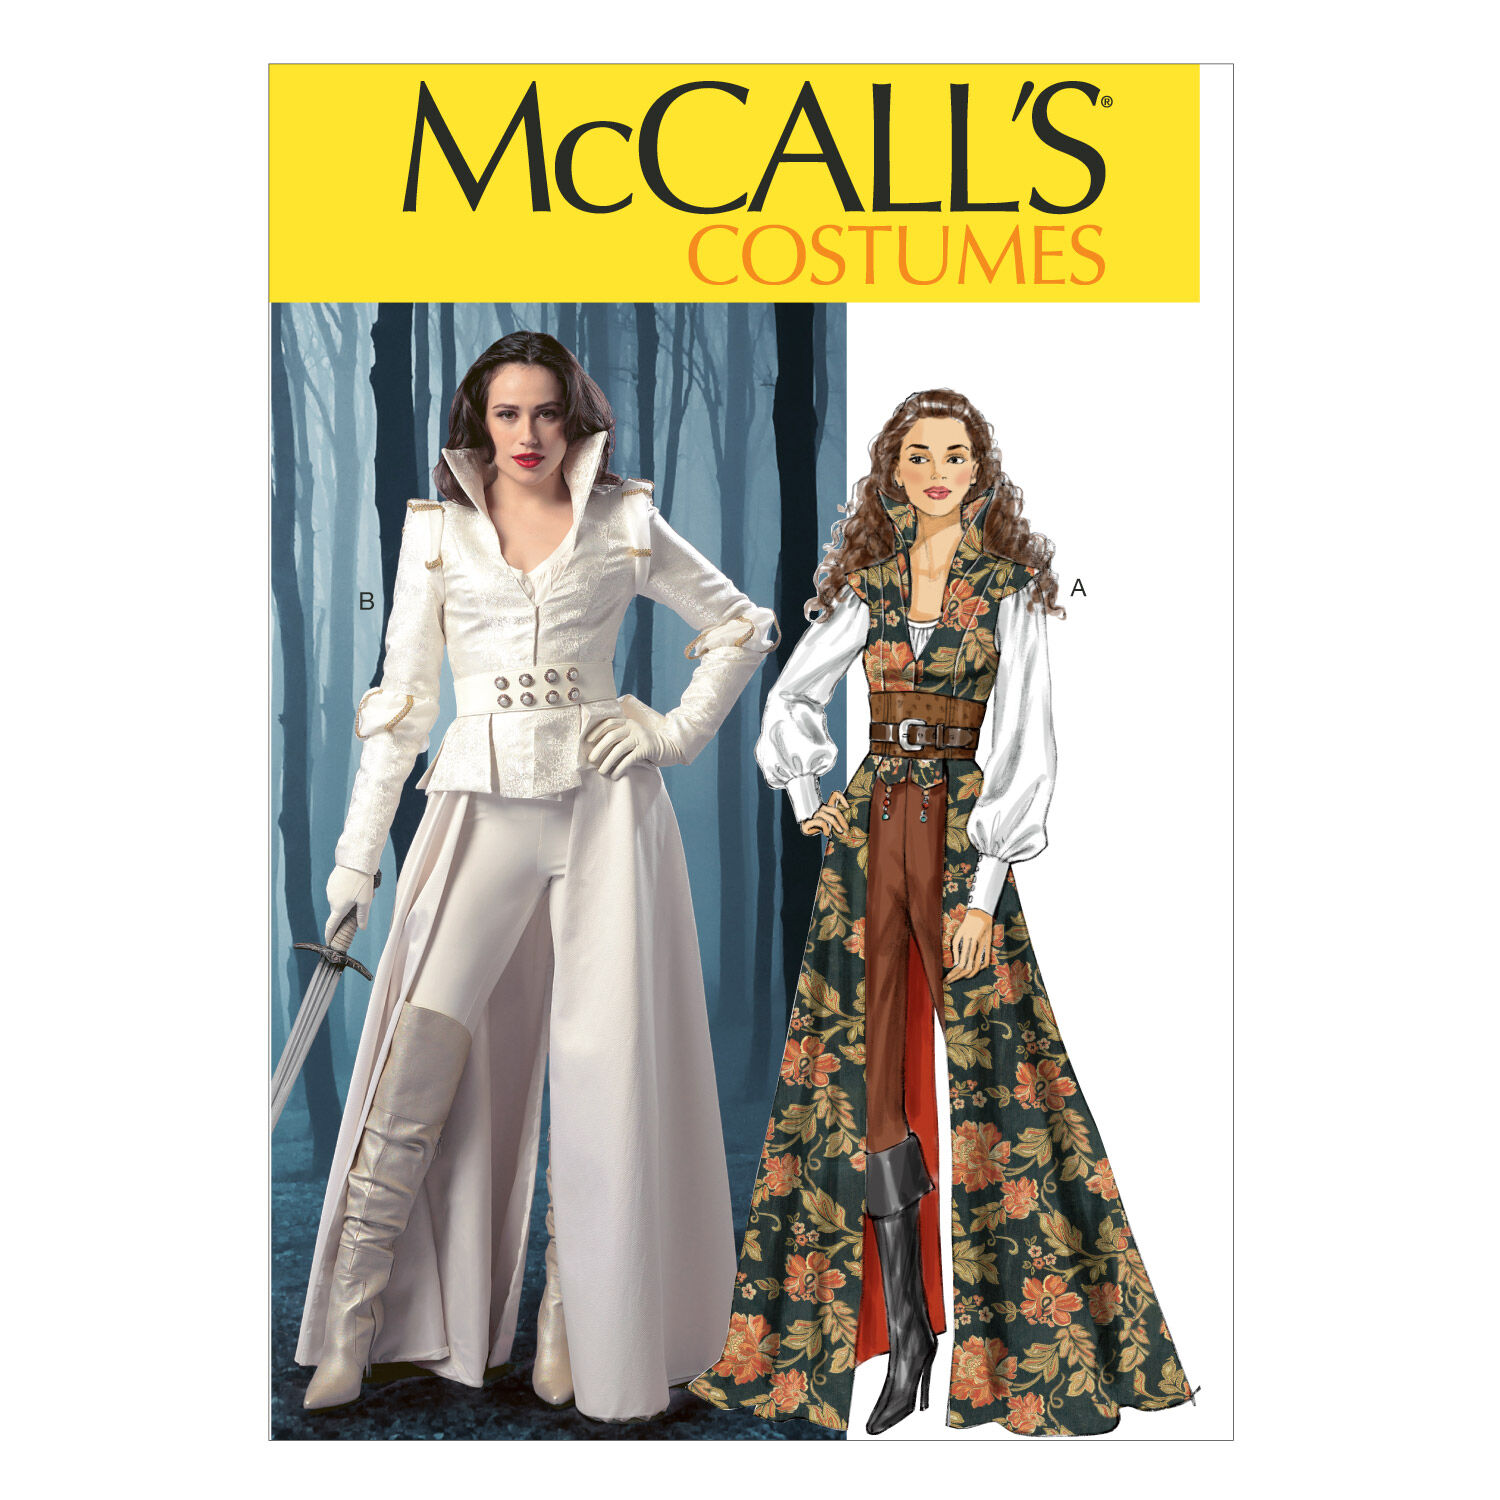 Steampunk Sewing Patterns- Dresses, Coats, Plus Sizes, Men's Patterns McCalls - Pattern M6819 - Collared Coat Top Corset and Belt - Sizes 6-8-10-12 - Costumes - At JOANN Fabrics  Crafts $18.95 AT vintagedancer.com